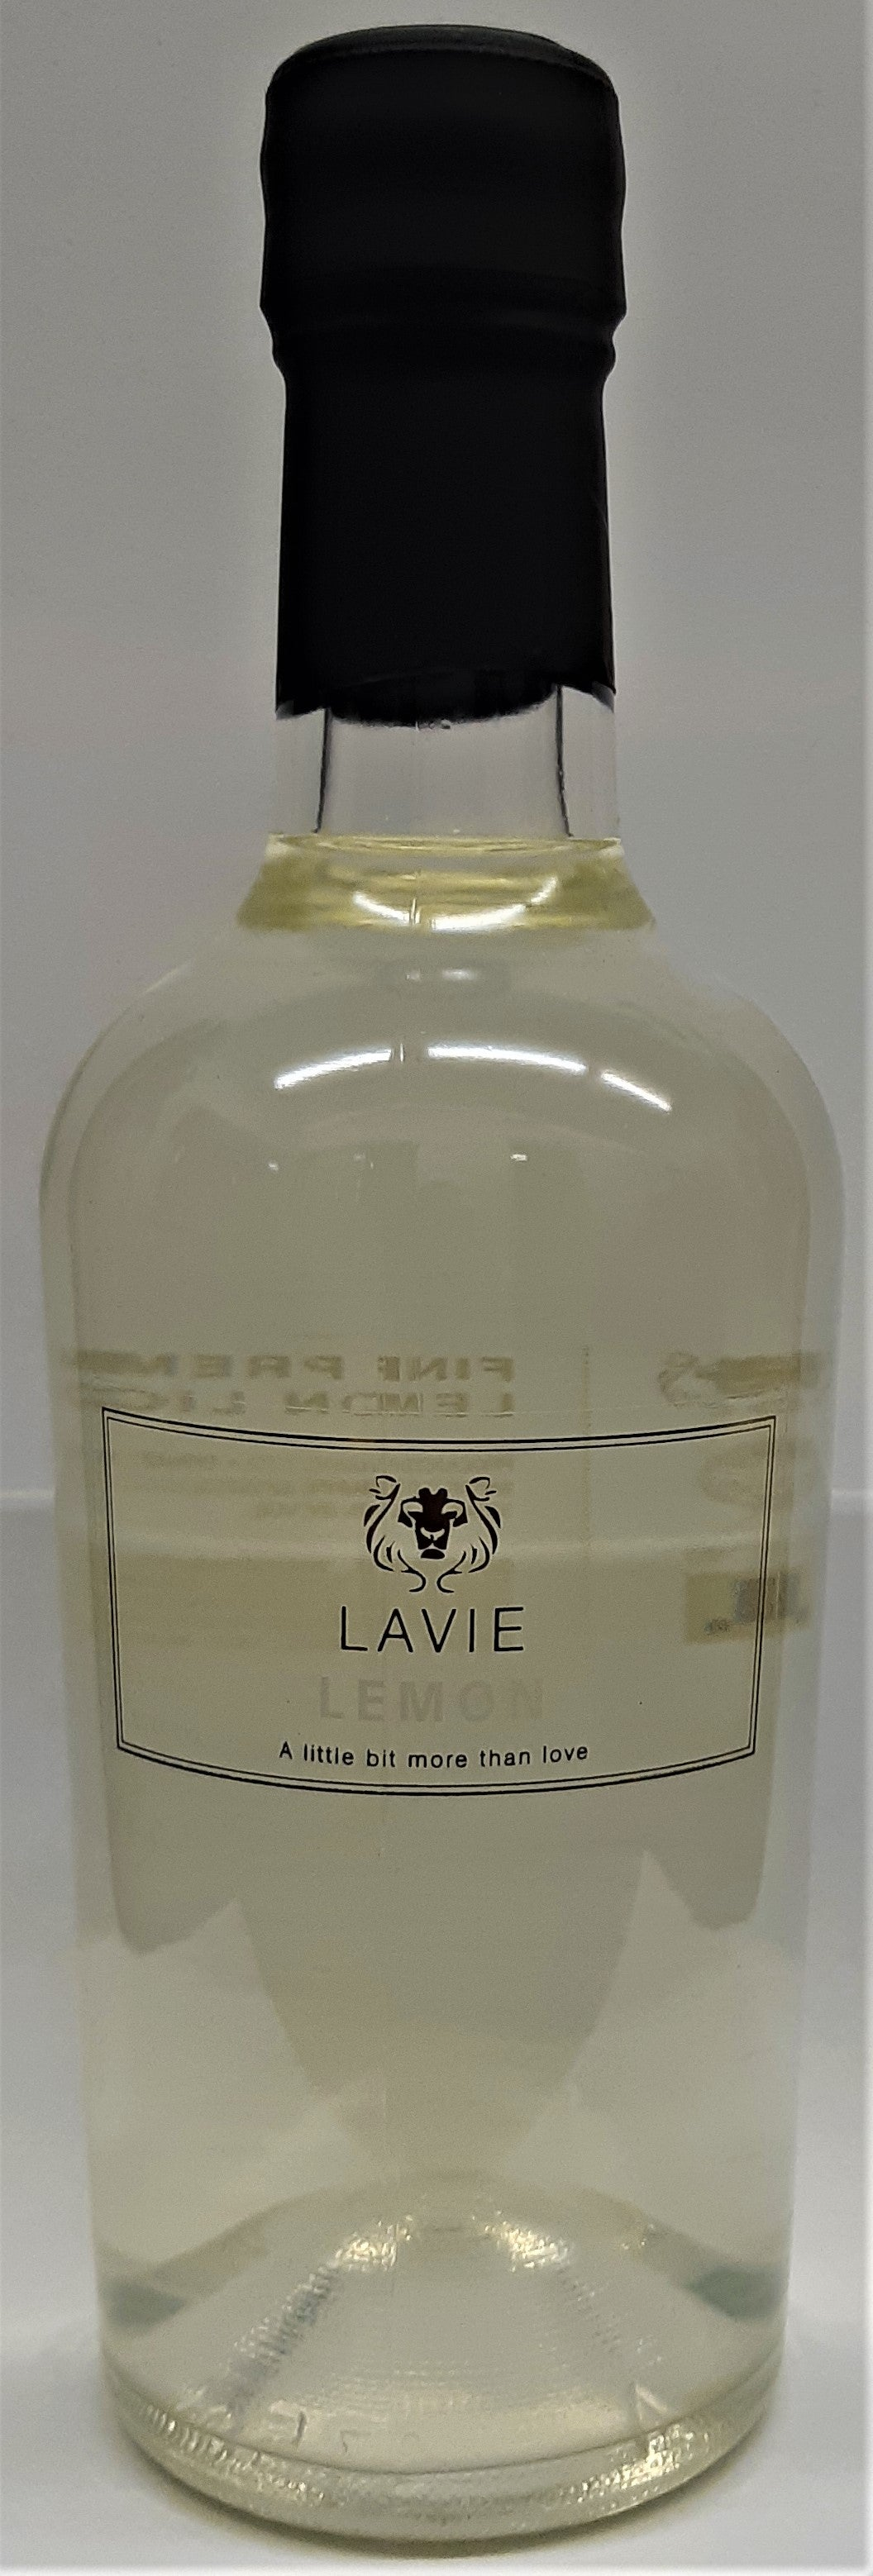 Lavie Lemon Supreme Liqueur 375Ml